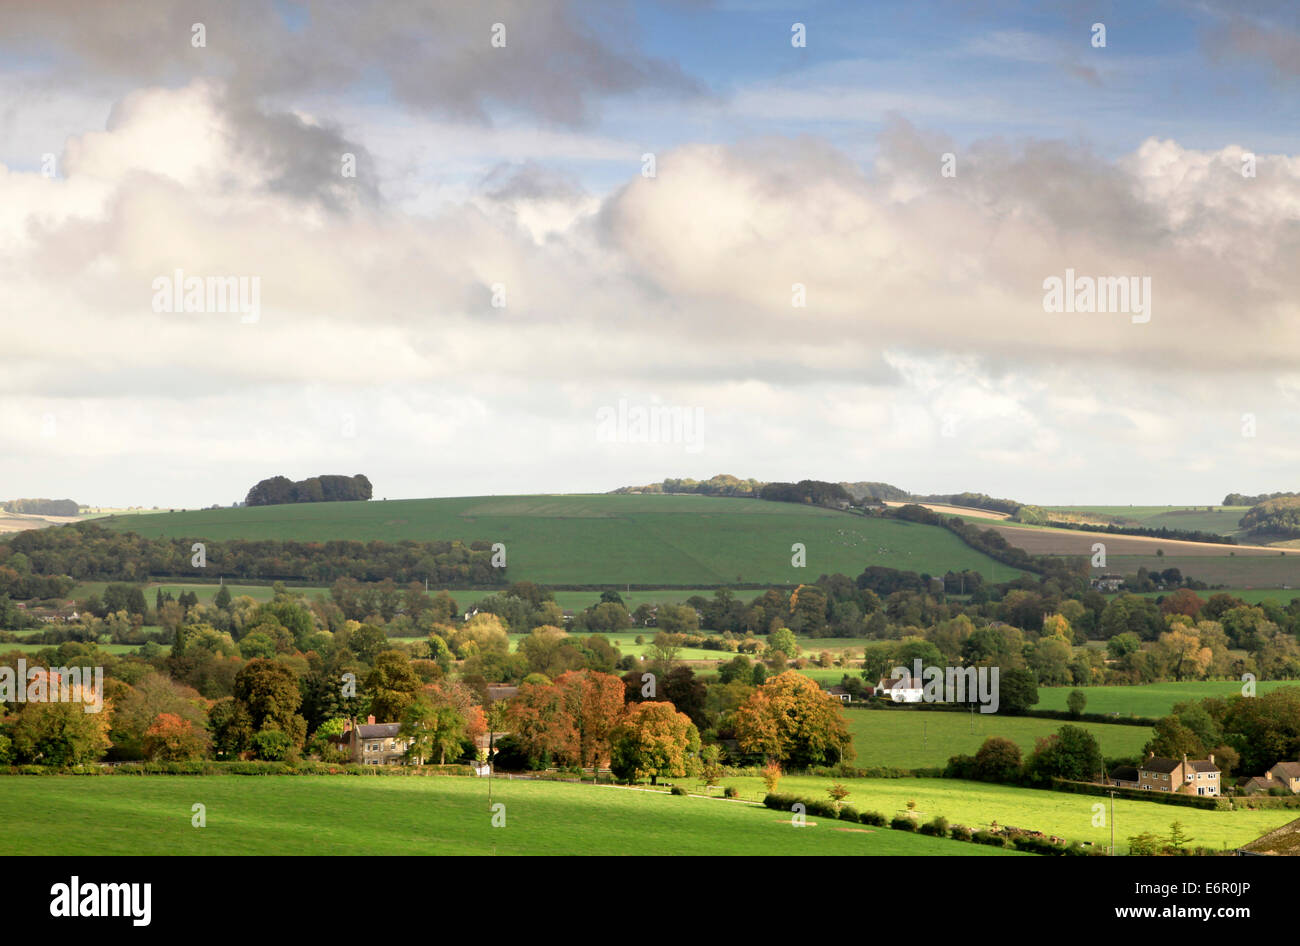 A view of the Wylye Valley in Wiltshire, England, including the villages of Corton and Upton Lovell. Stock Photo